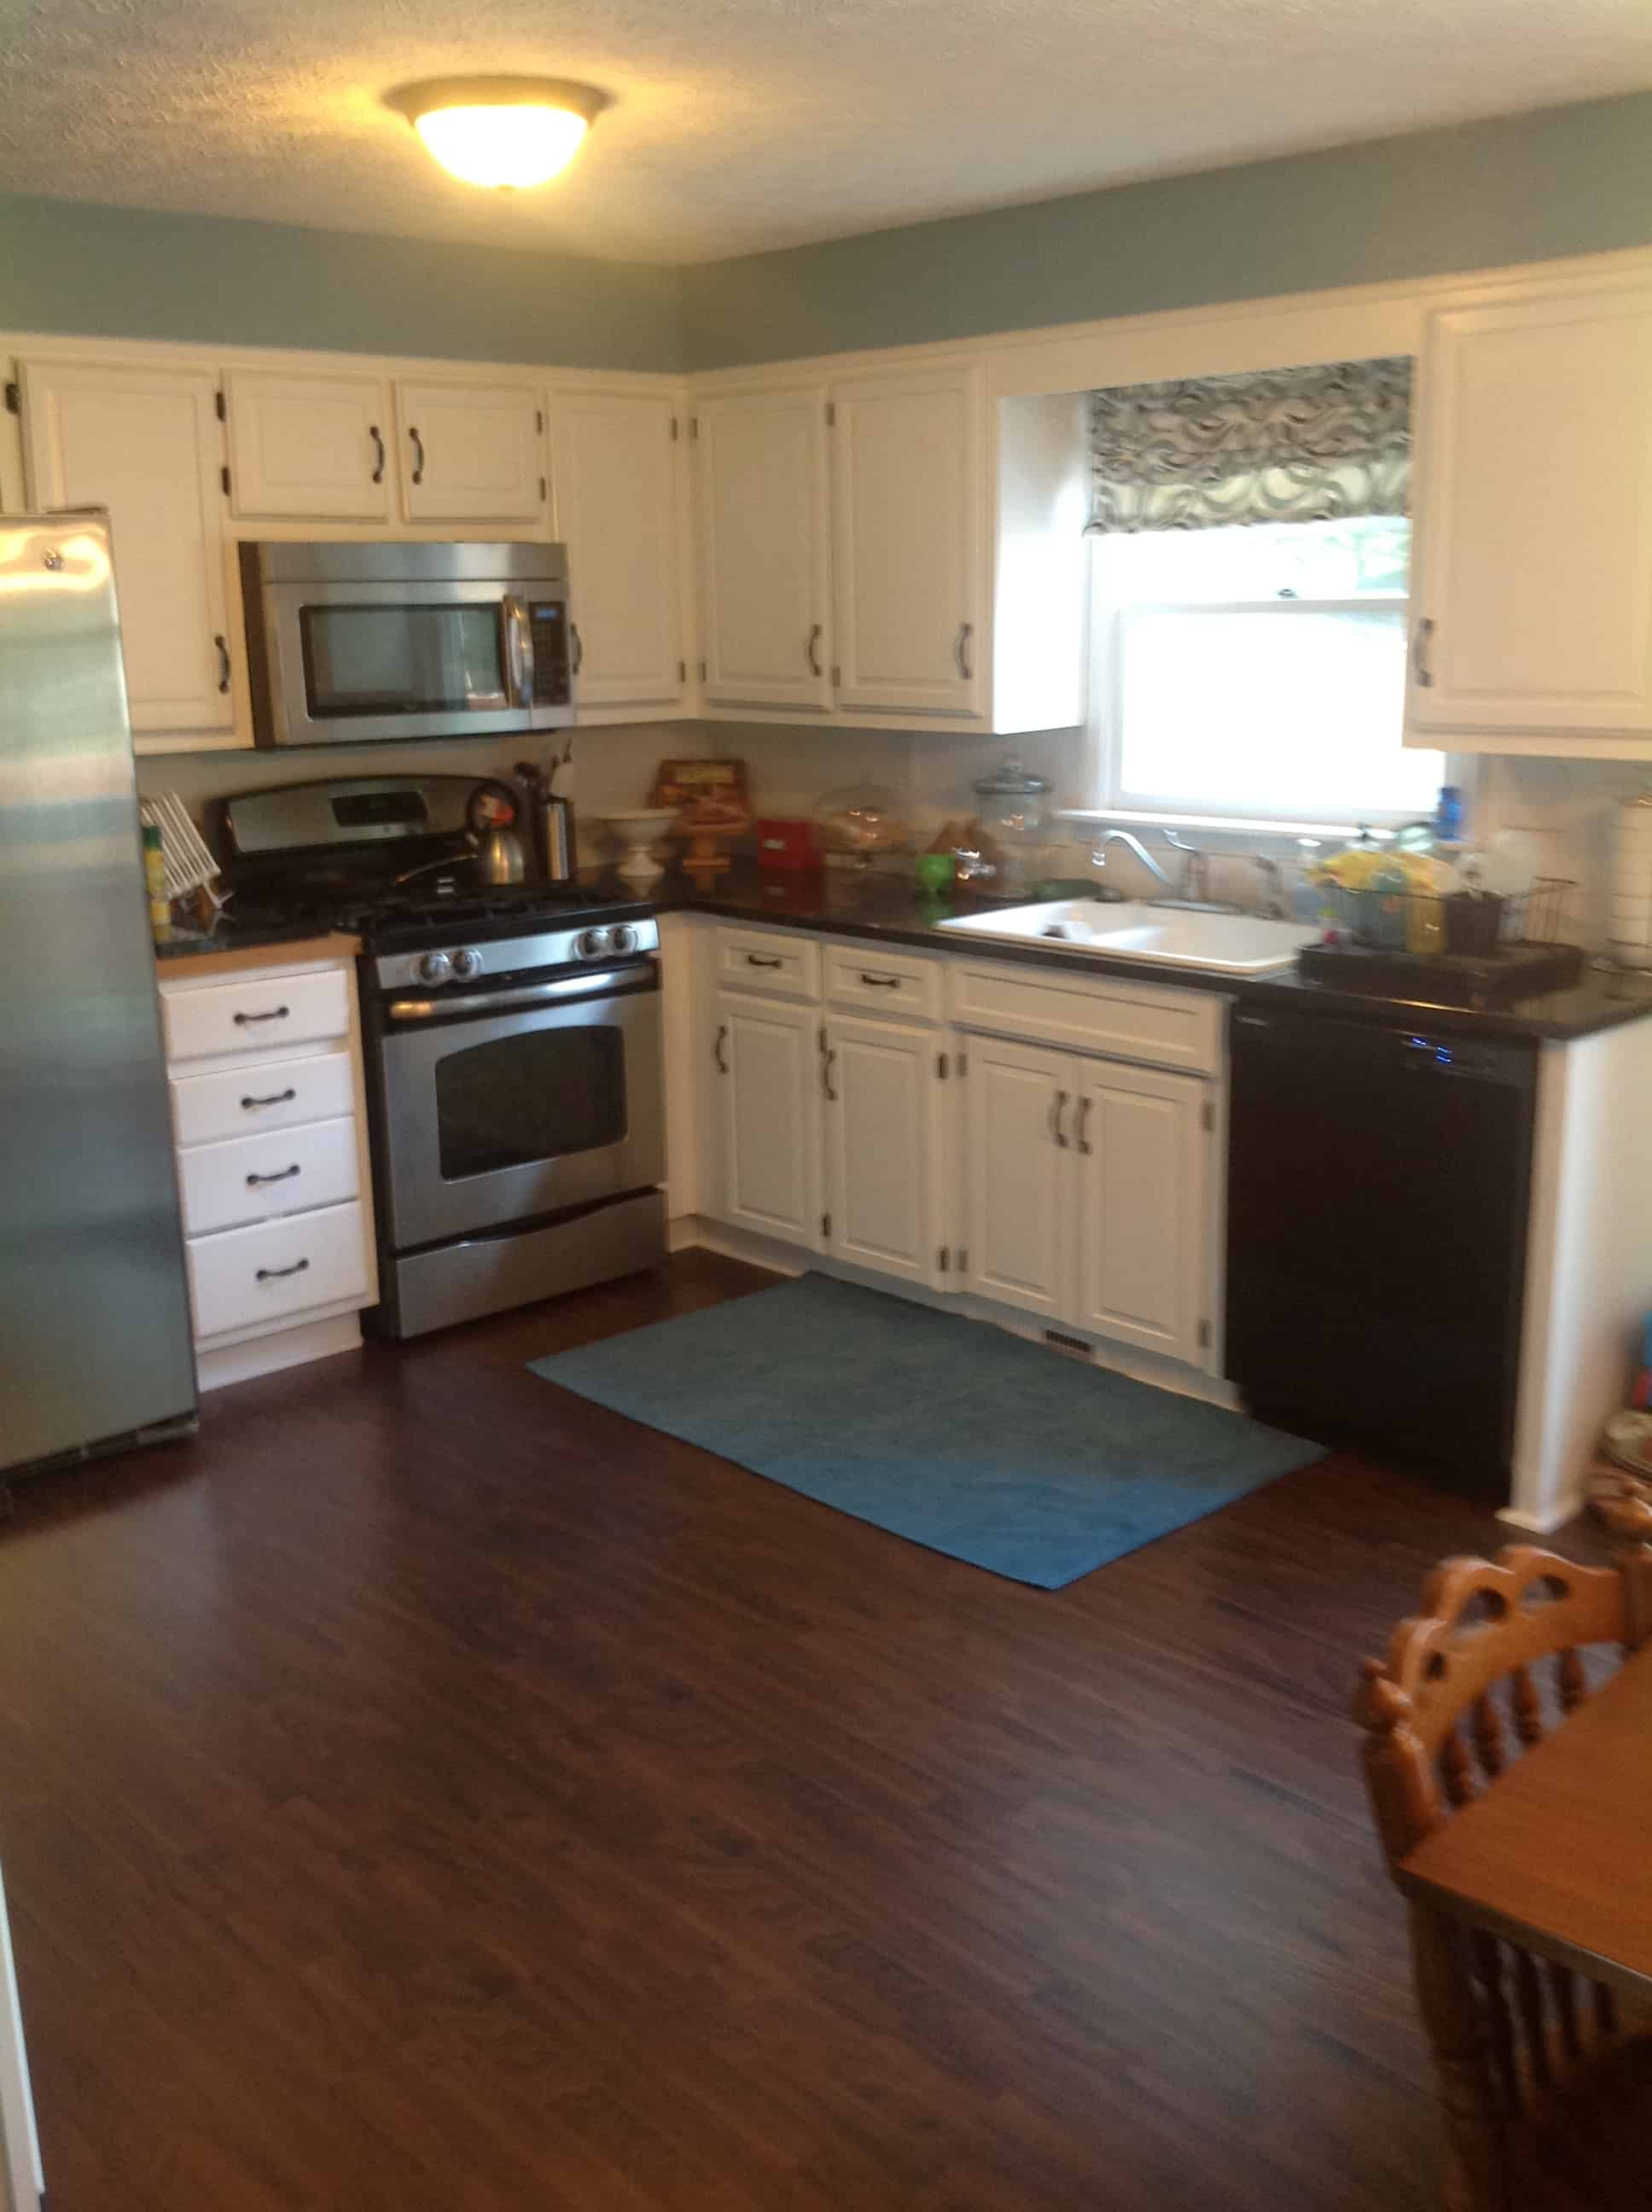 House to Home: The Kitchen Before and After